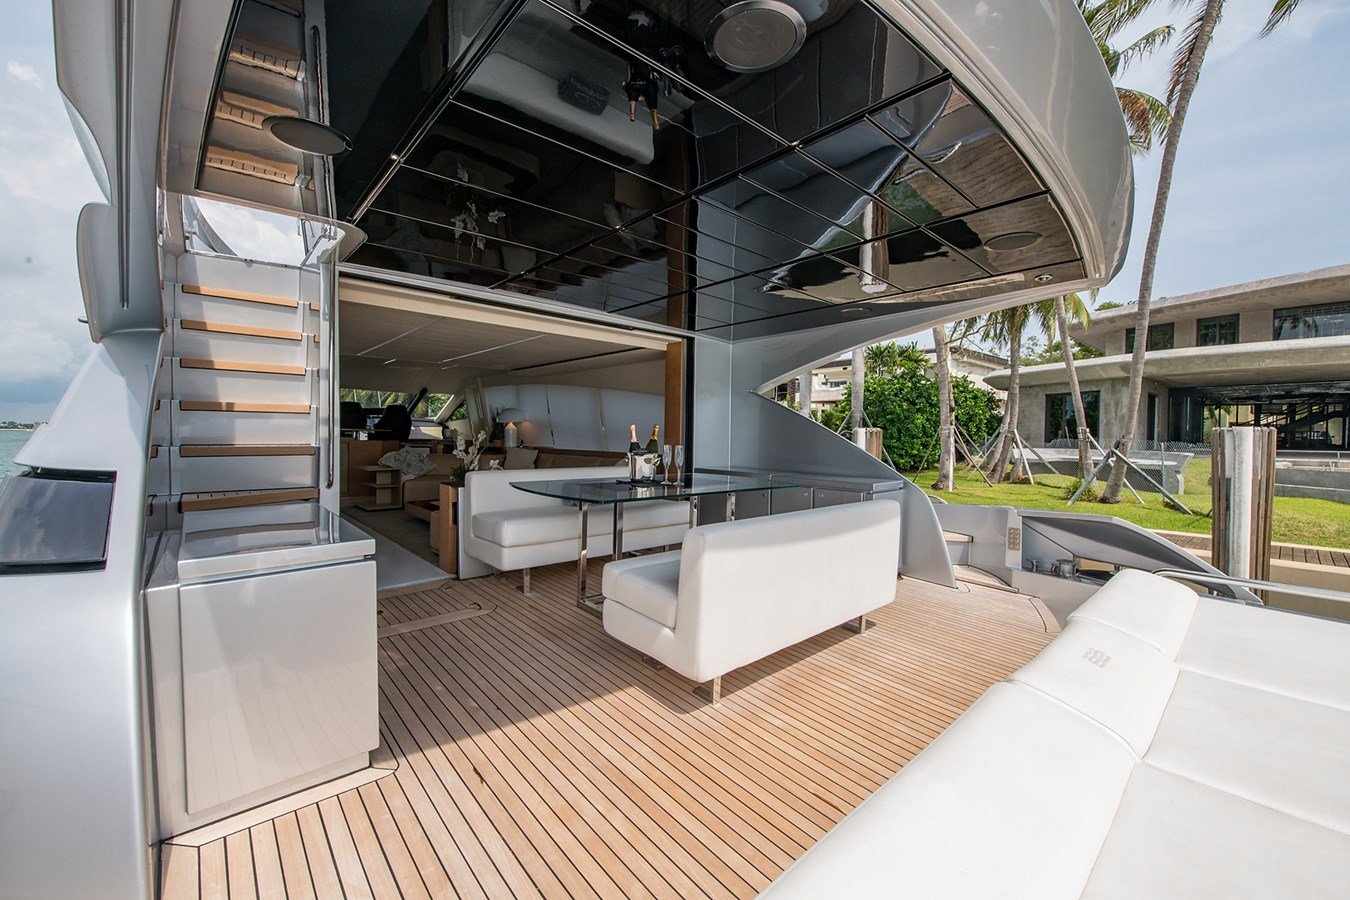 Incognito_Aft deck9 2012 PERSHING  Motor Yacht 2810231